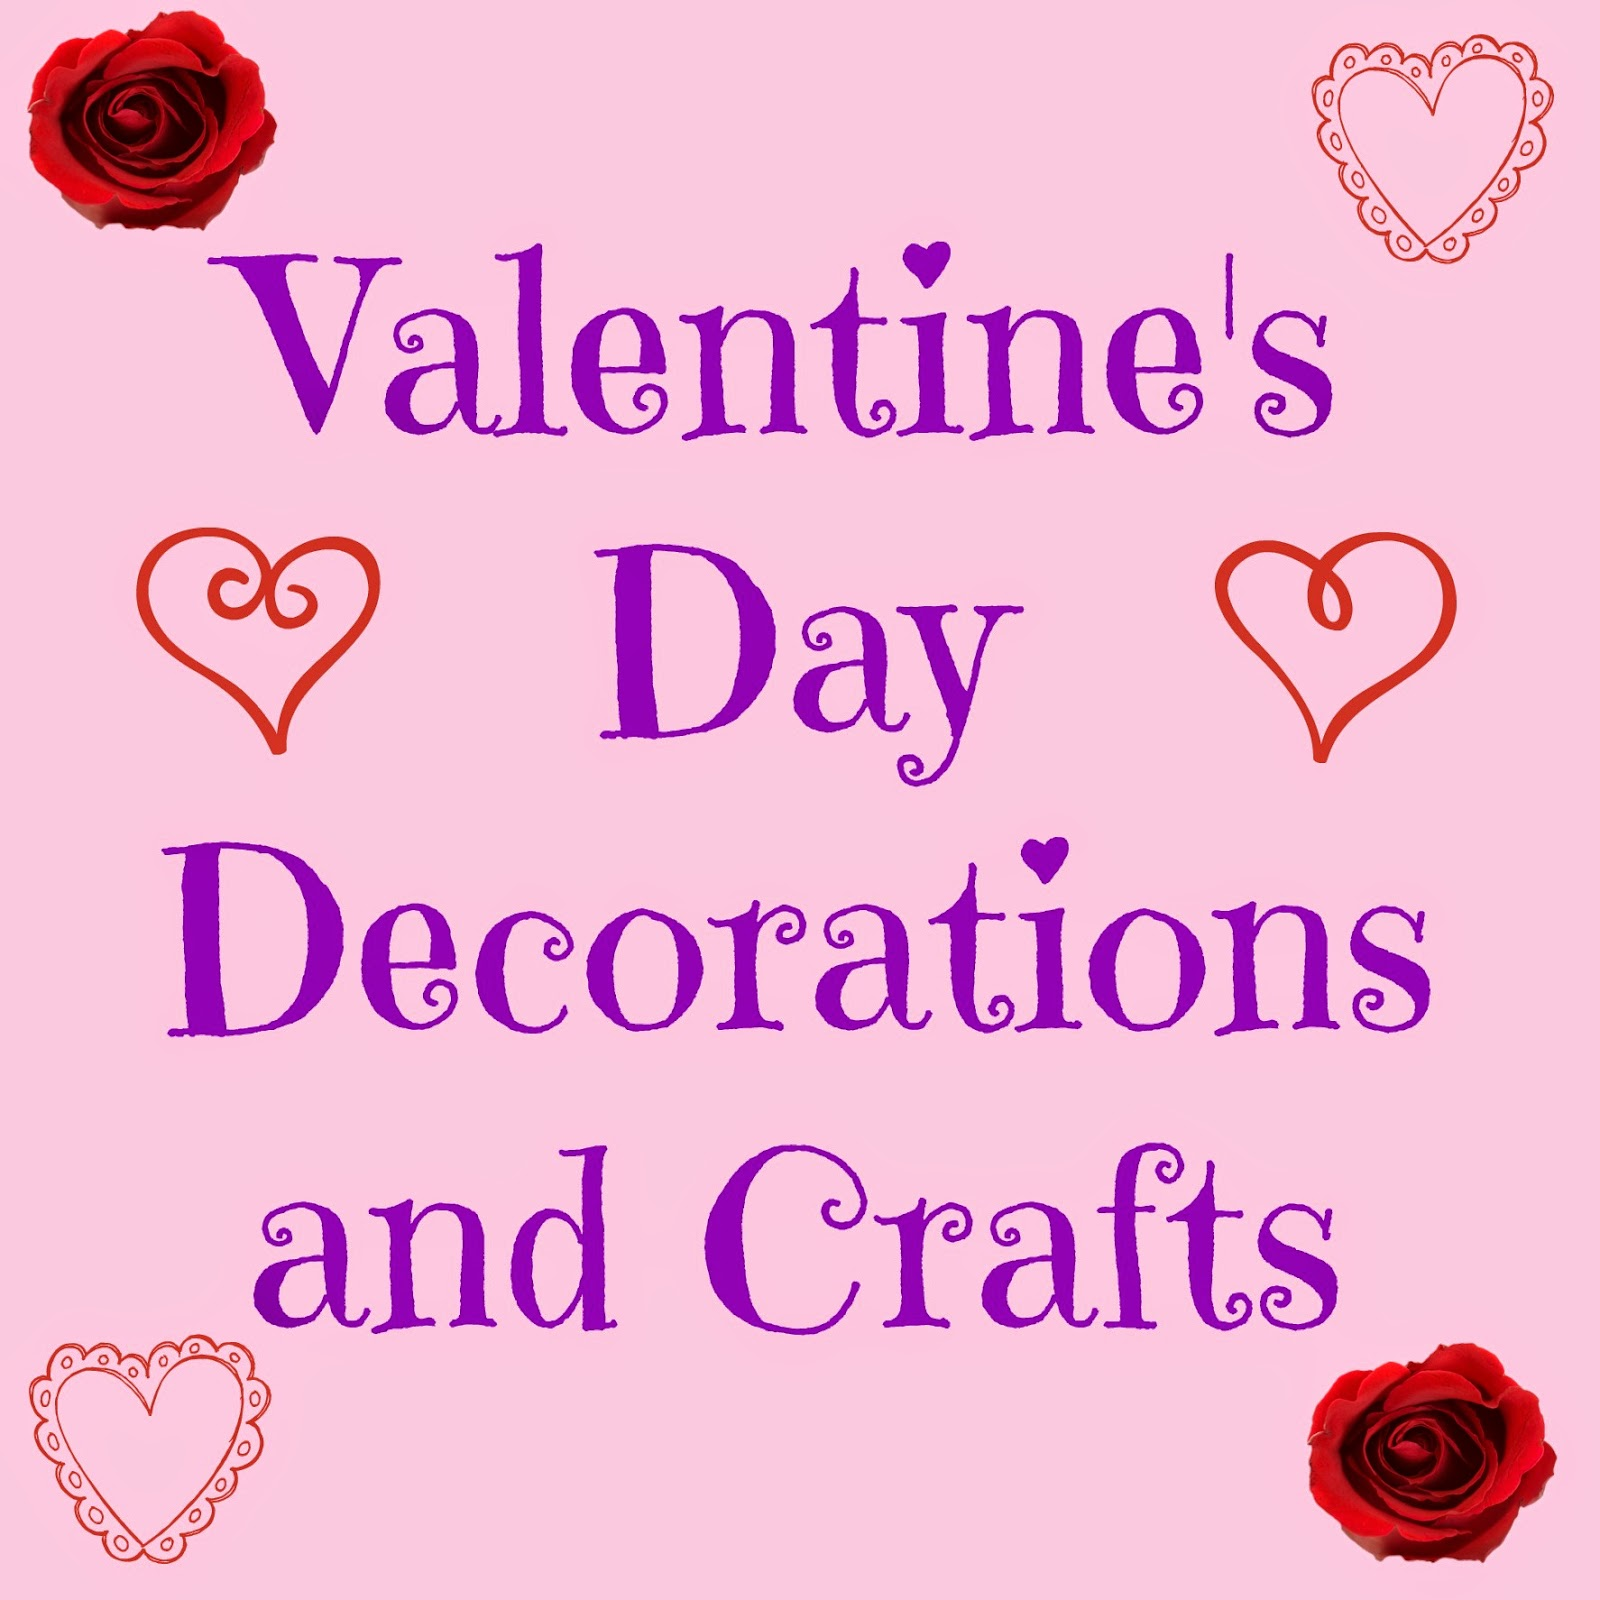 For day three of Valentine's Week, I decided to post a few decorations and crafts to make your house very festive and fun. I love decorating for all of the holidays, but Valentine's Day is special in that I get to decorate with roses, hearts, pink, and lots of romantic, girly stuff.  Here is a list of some super simple, cute, and fun V-Day decorations and crafts:...